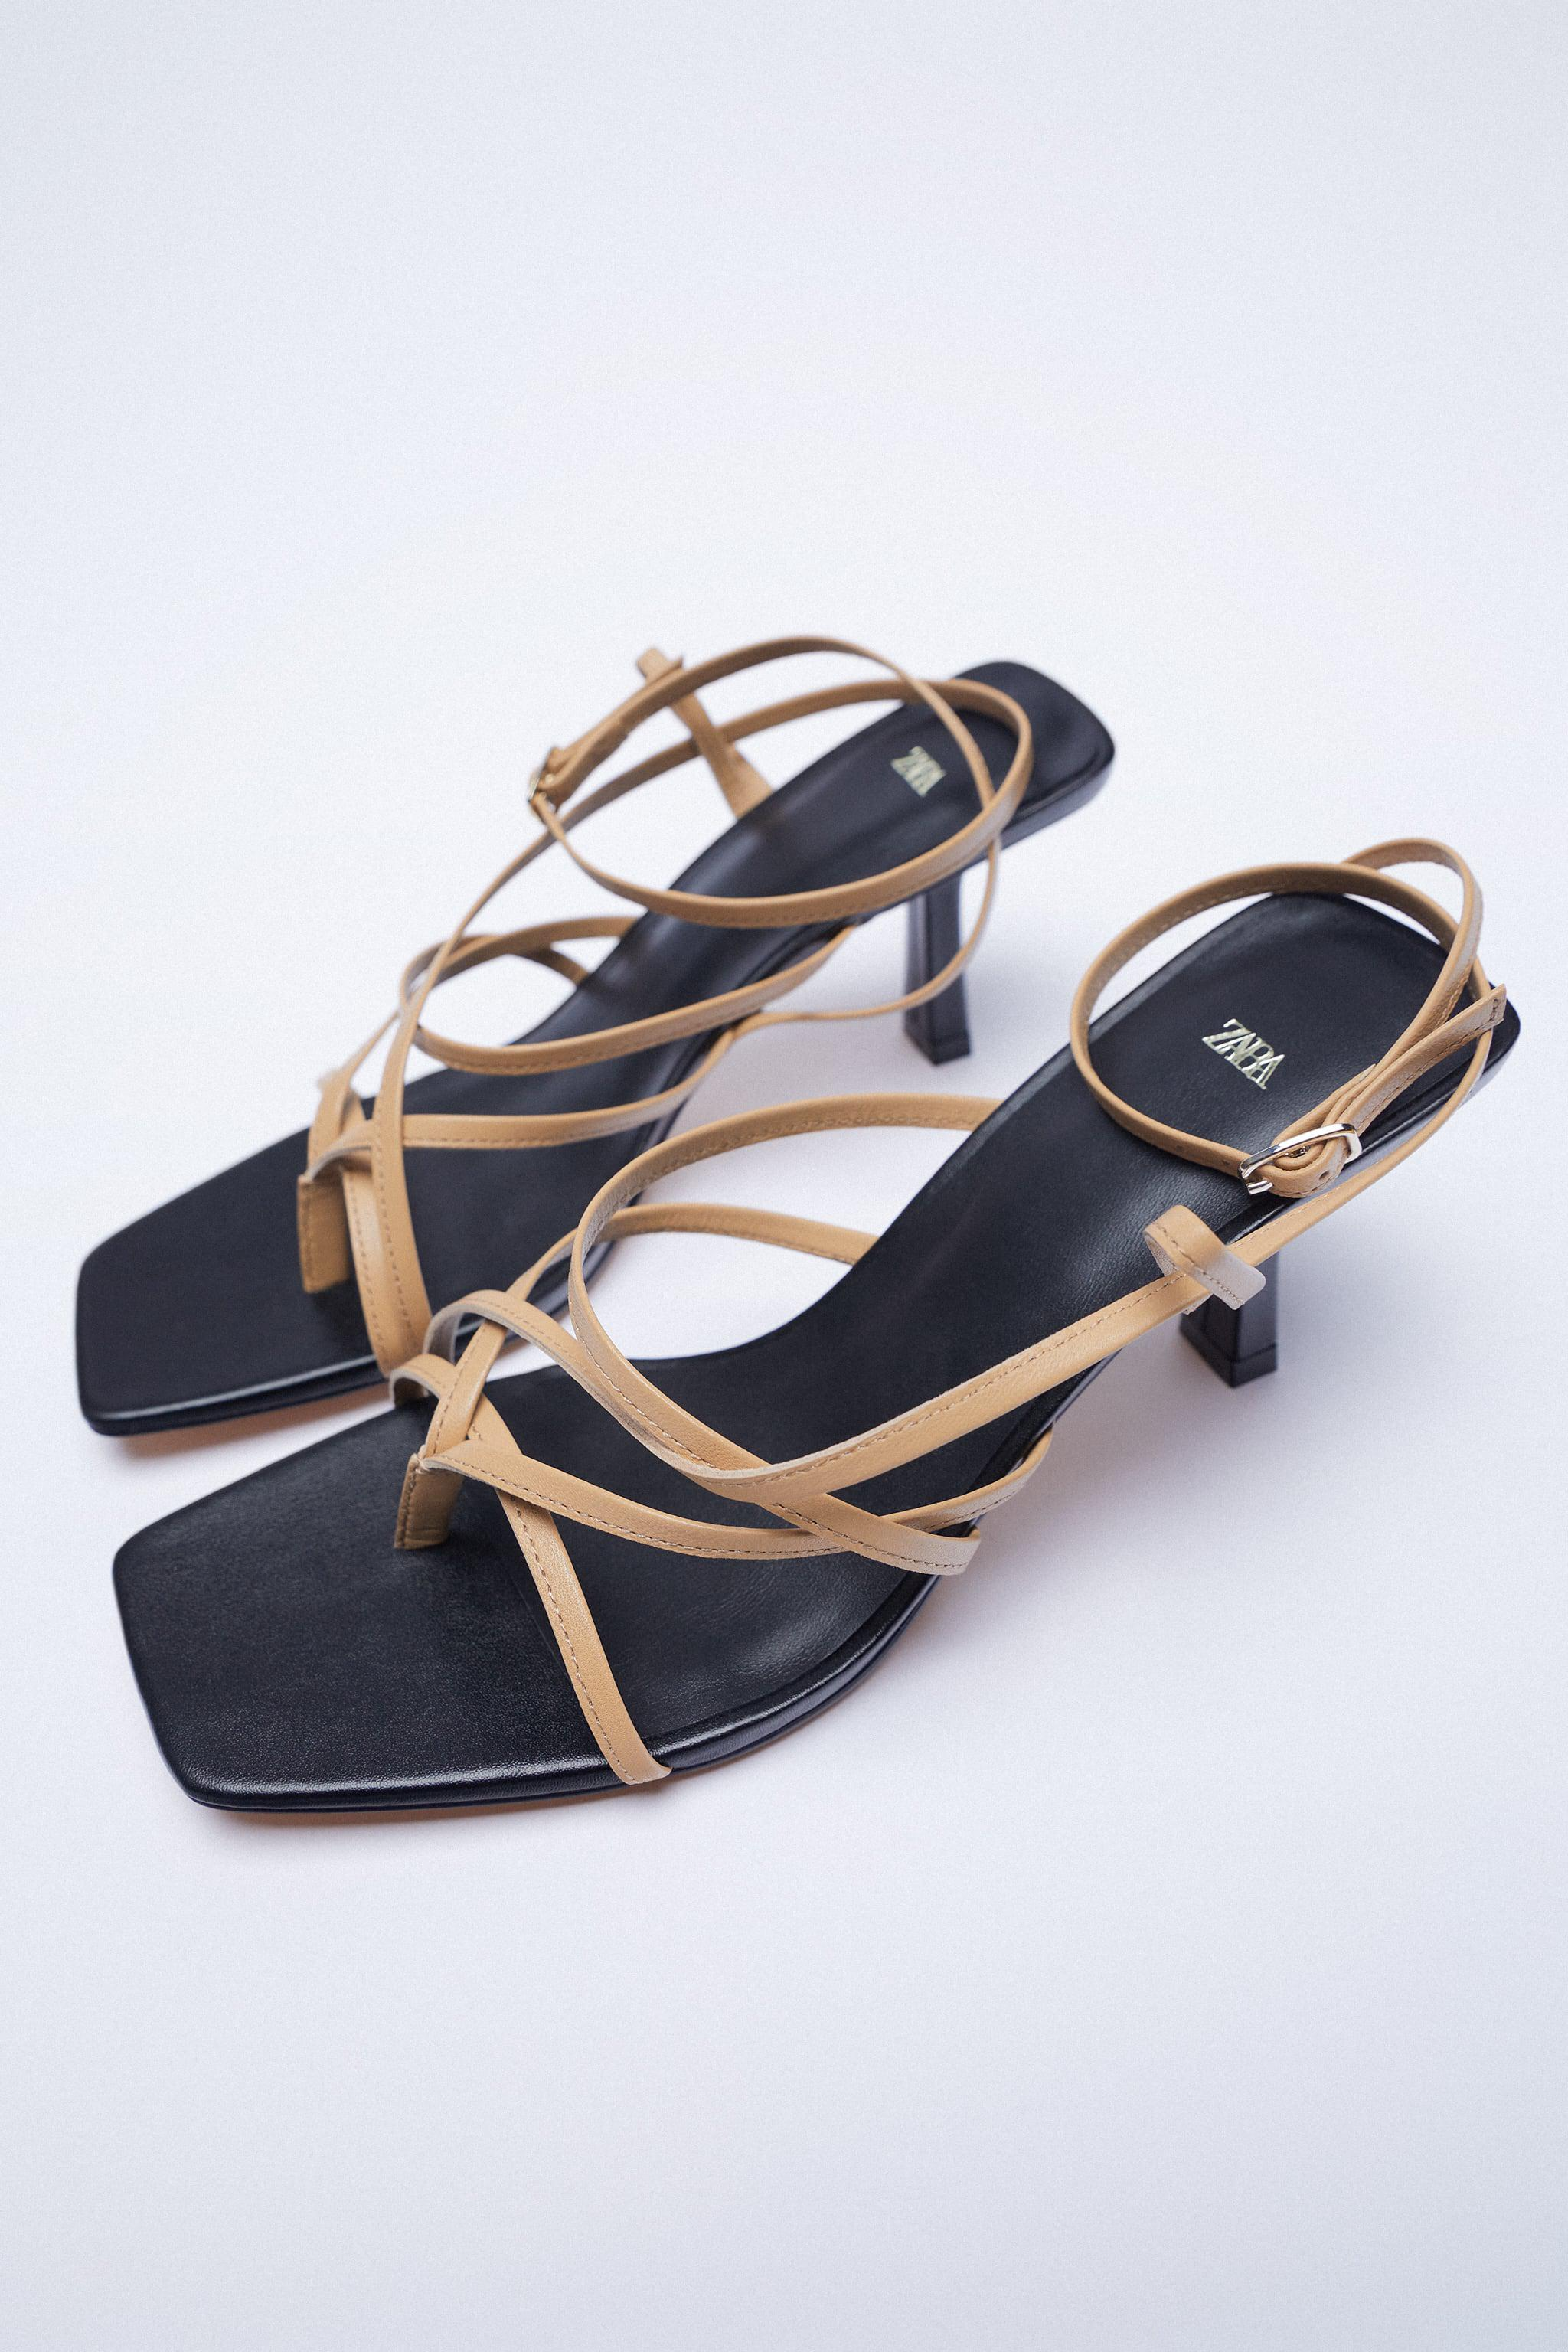 LEATHER HIGH HEELED STRAPPY SANDALS 4